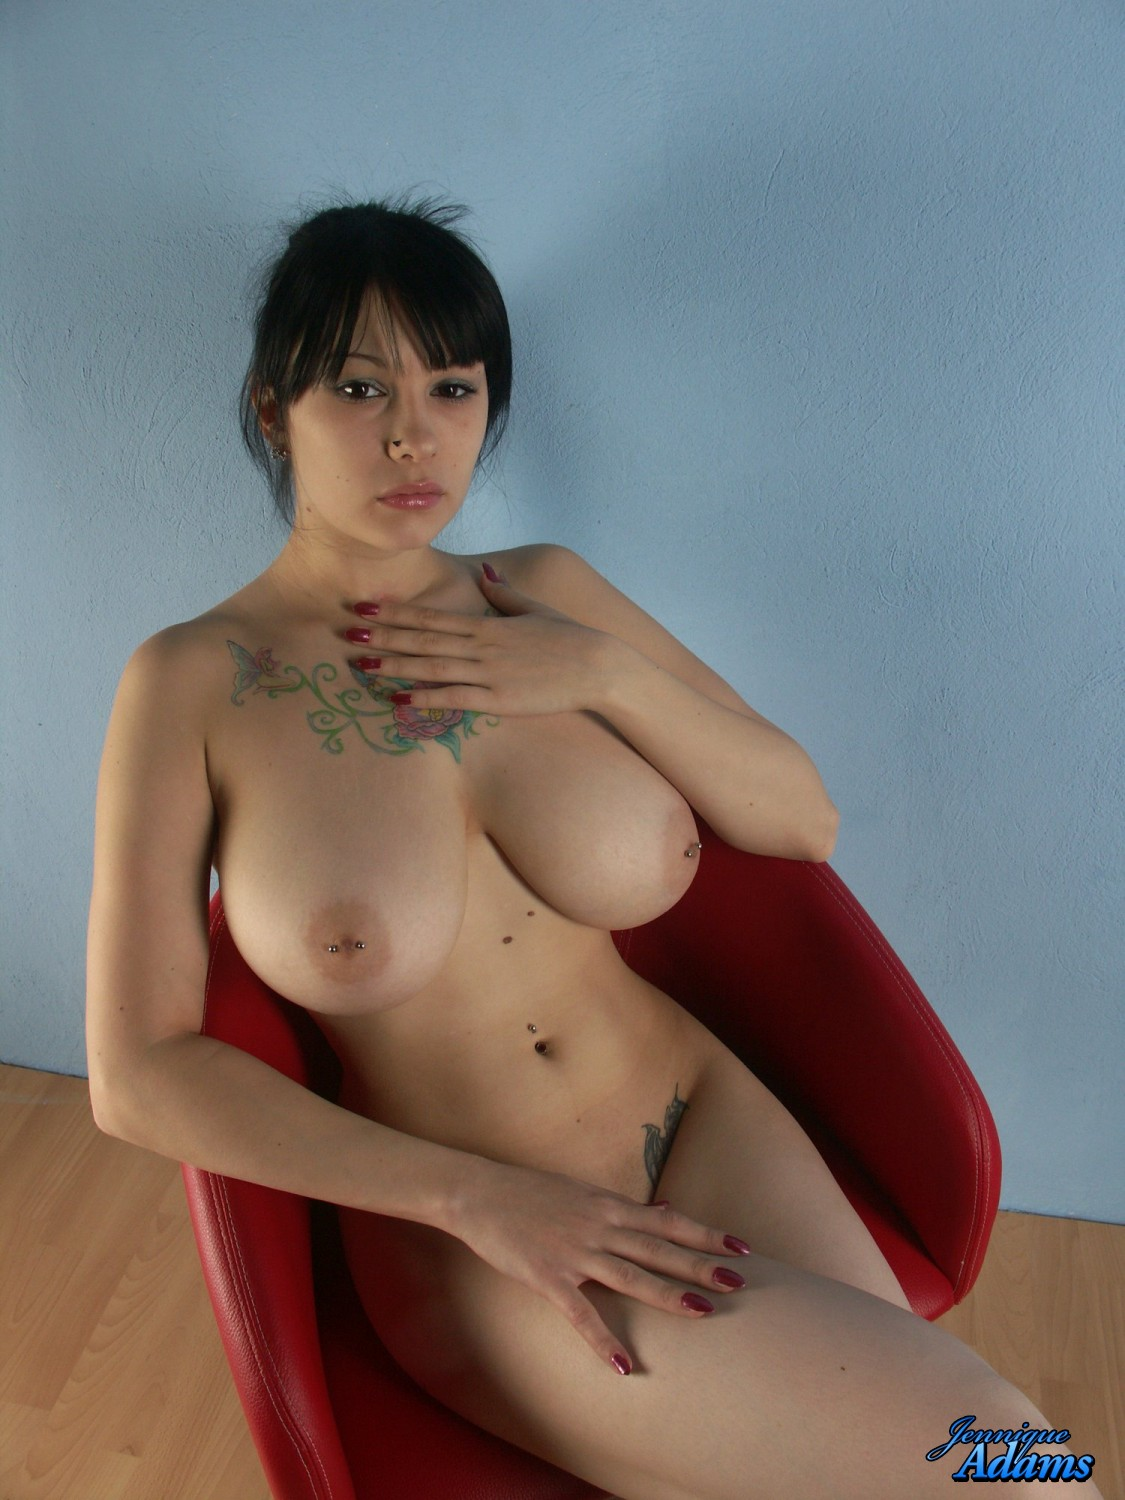 hentai-master-naked-pictures-jennique-sex-girl